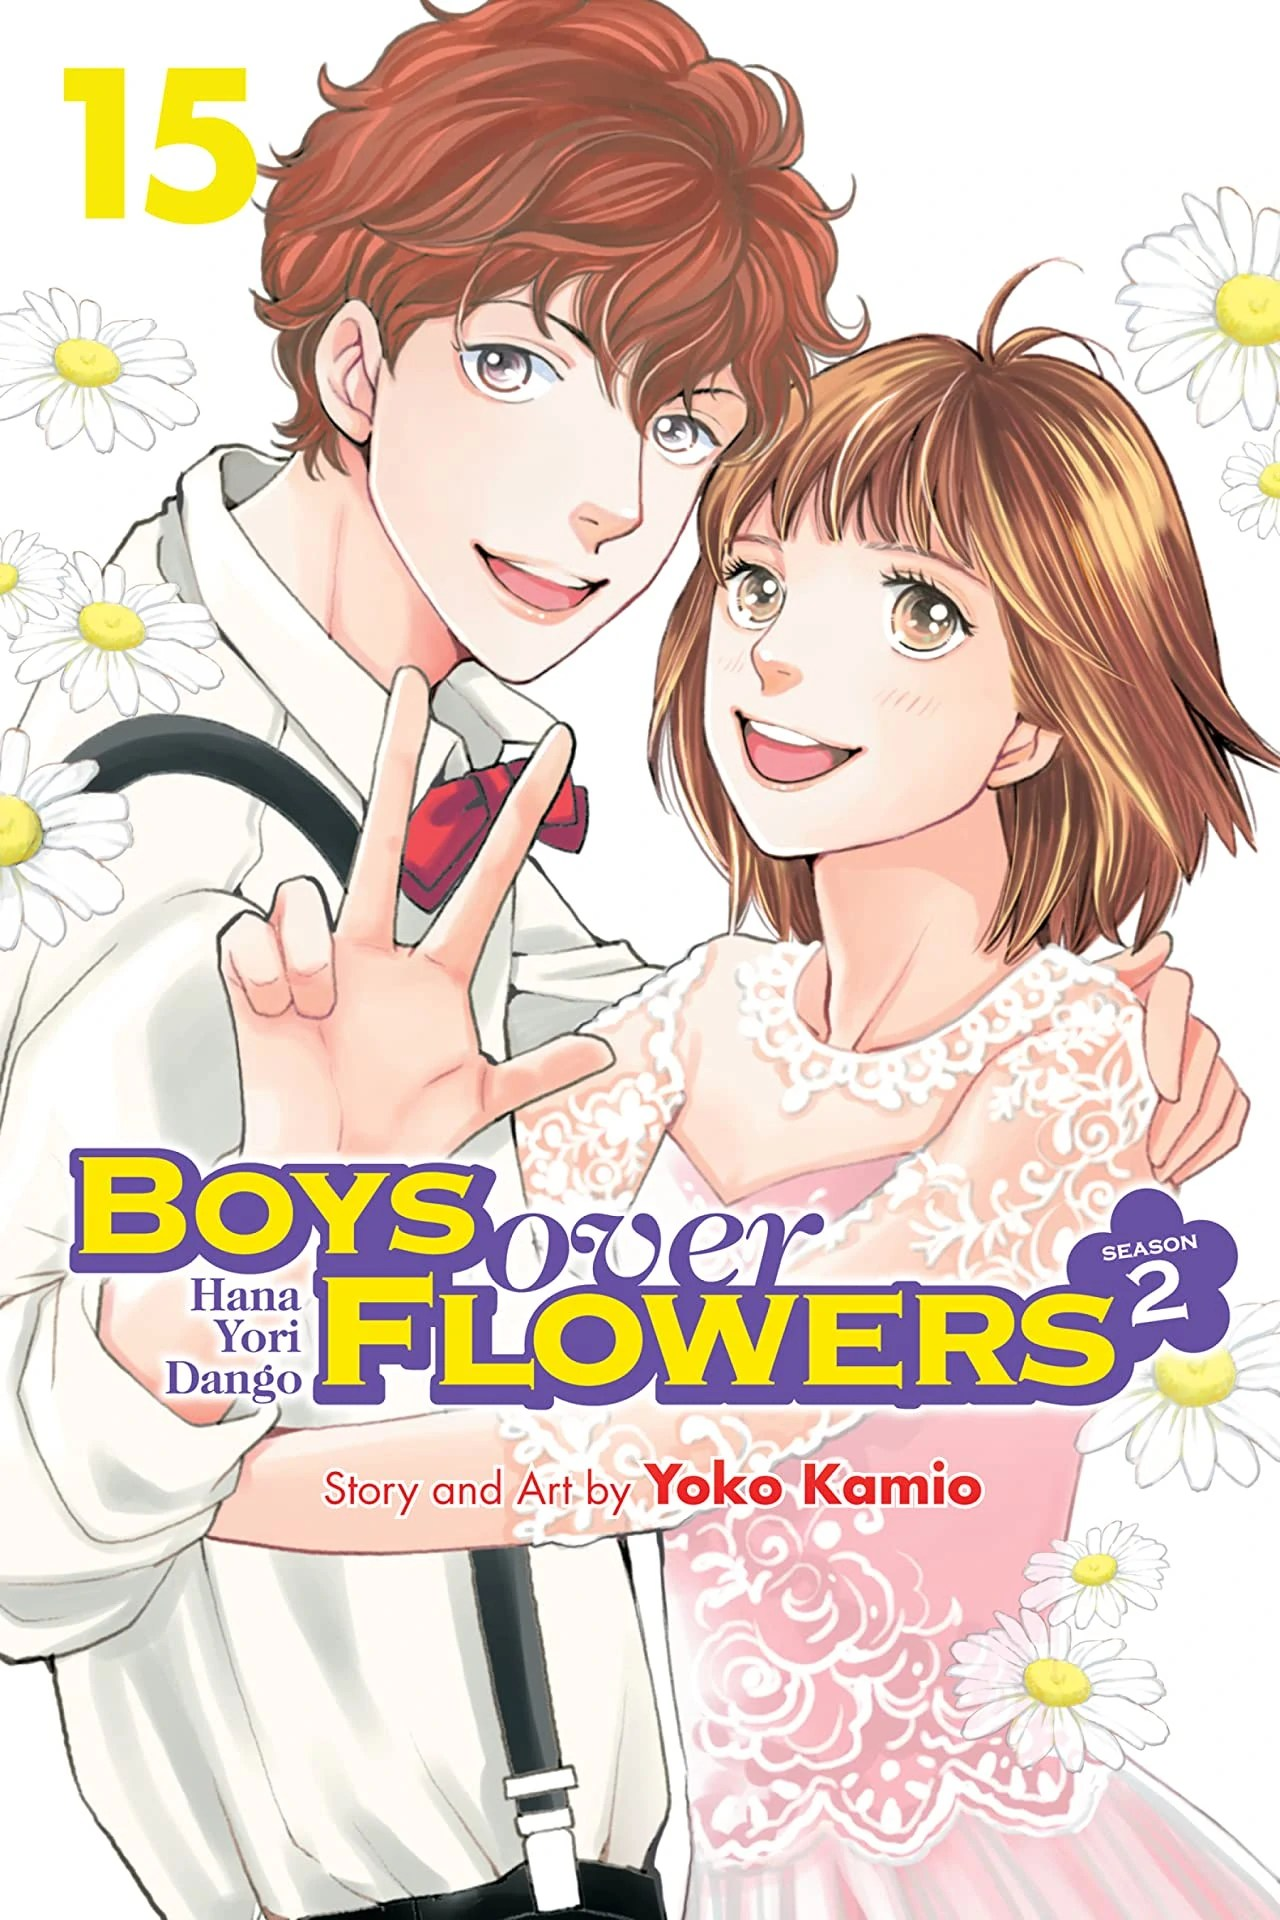 Will there be a Boys Over Flowers season 2? | Yahoo Answers